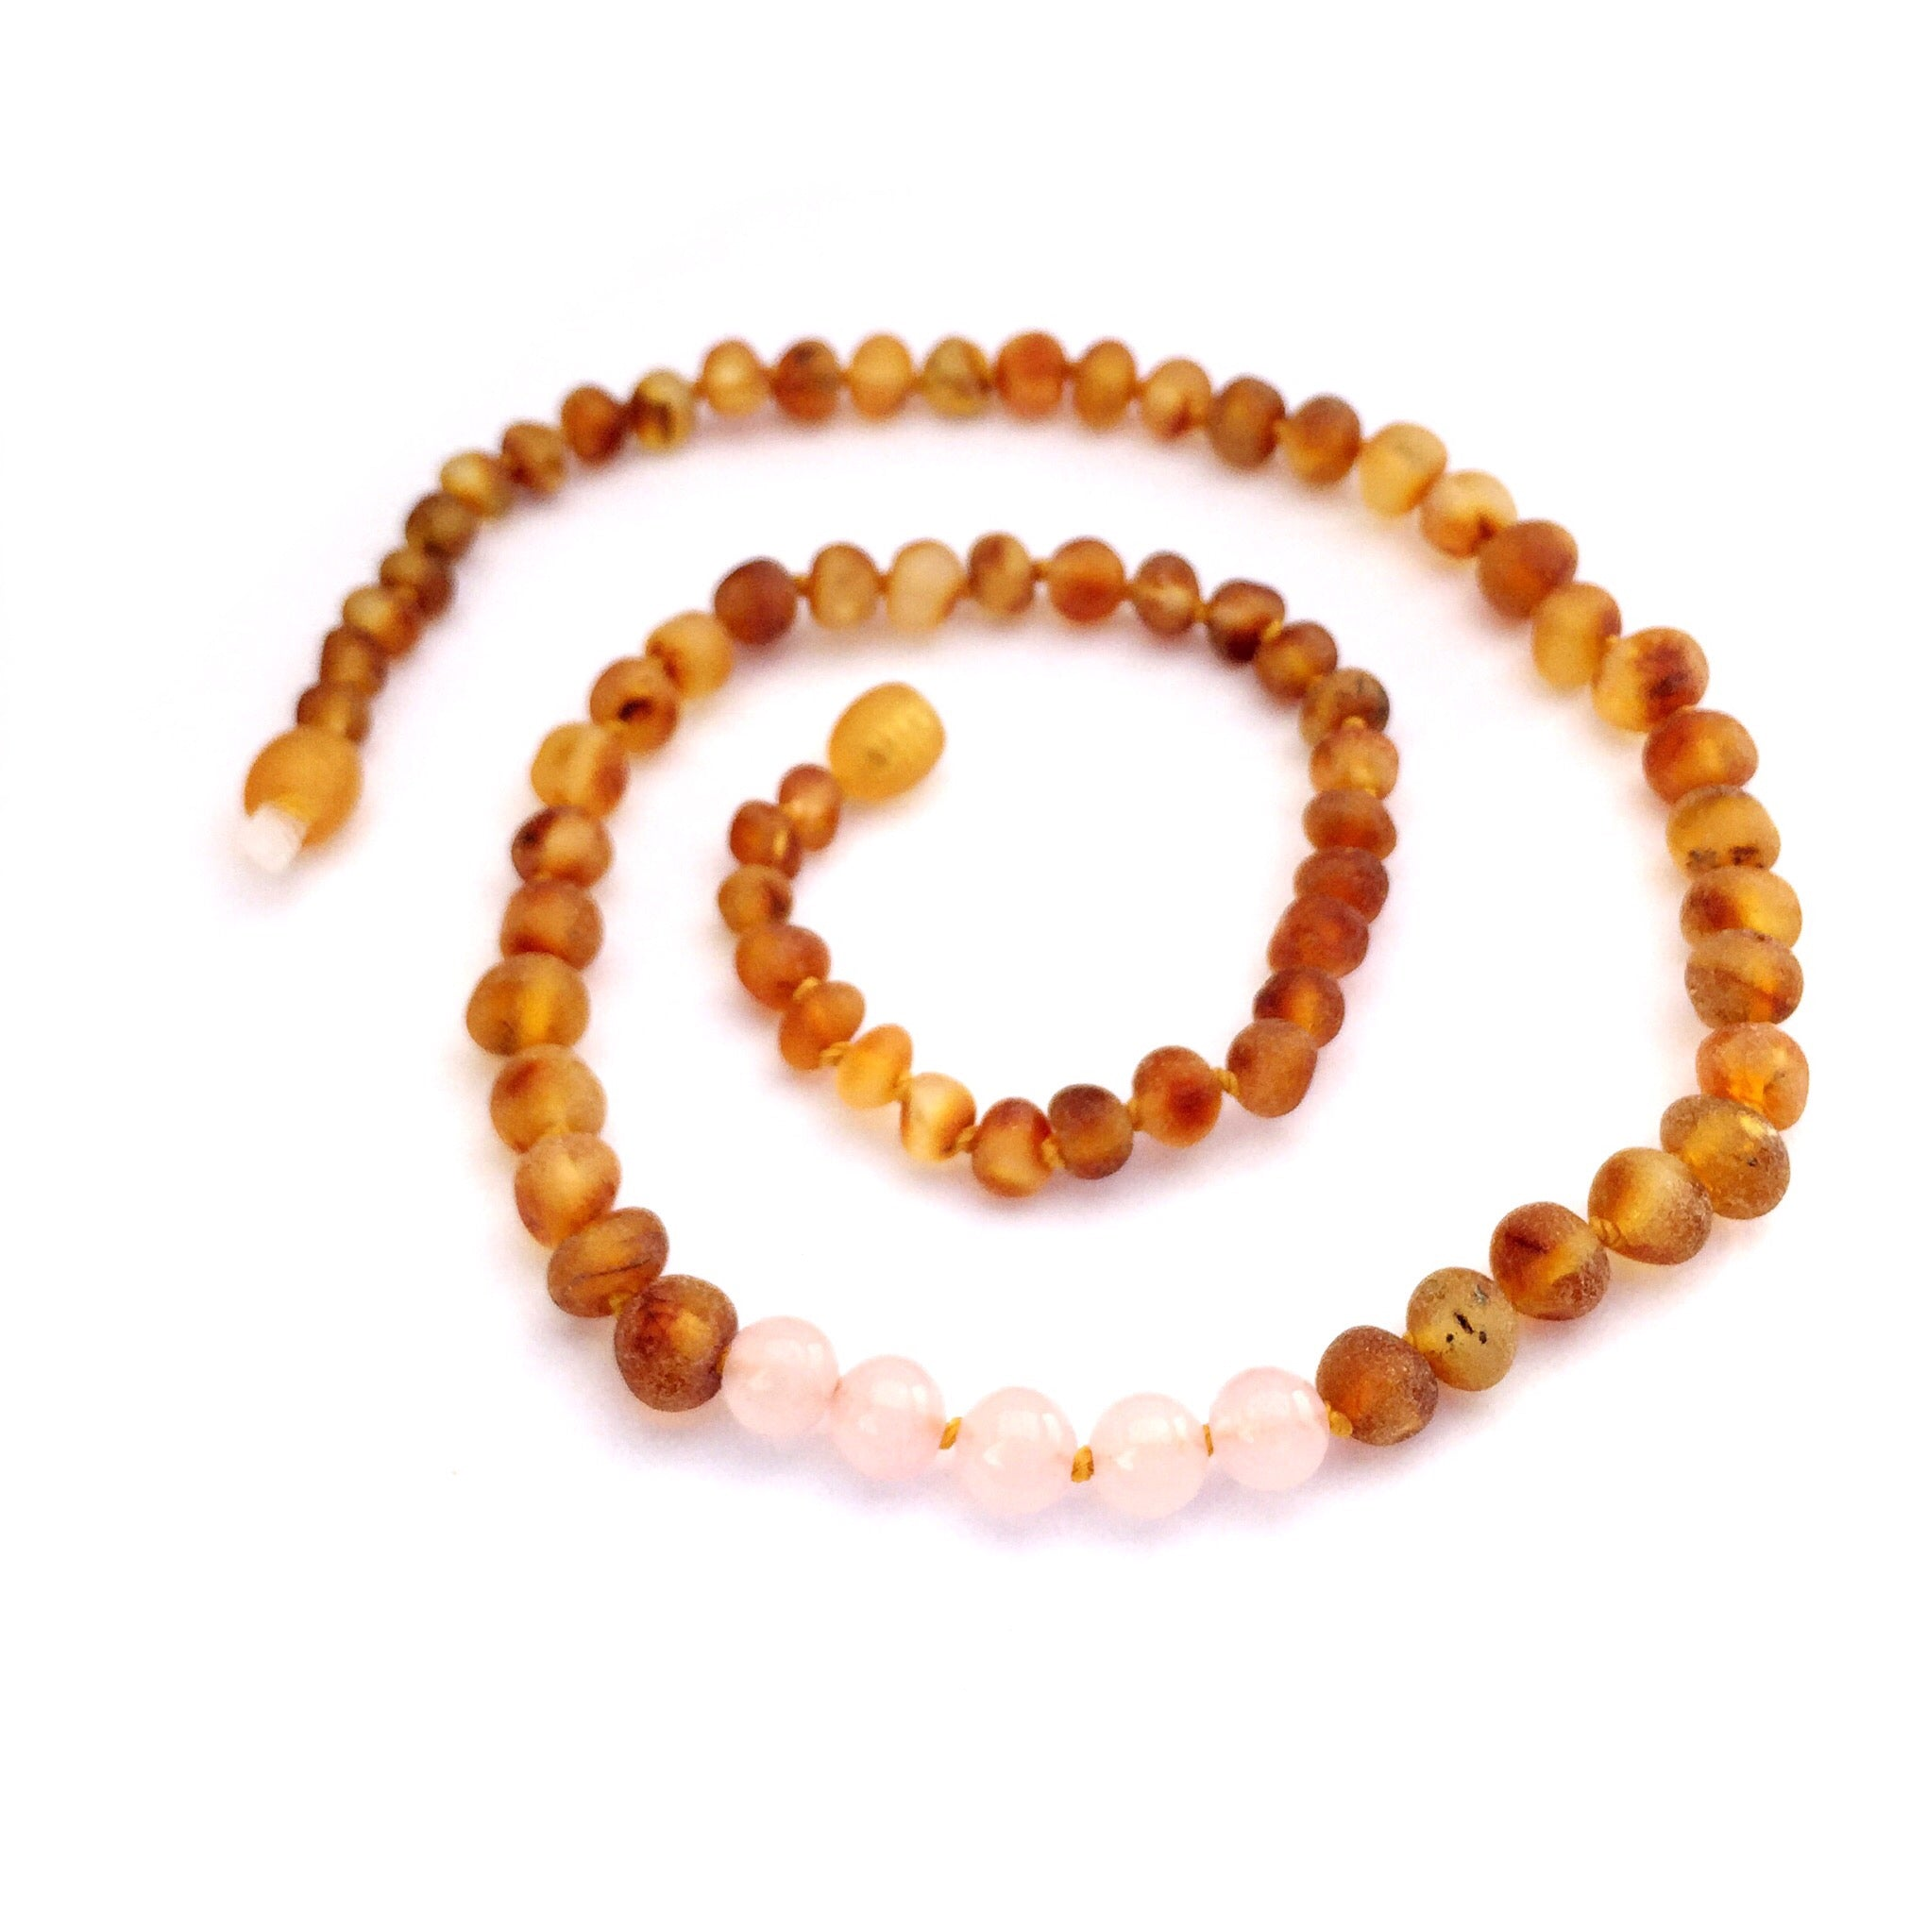 Amber and Rose Quartz Necklace - Crunch Natural Parenting is where to buy